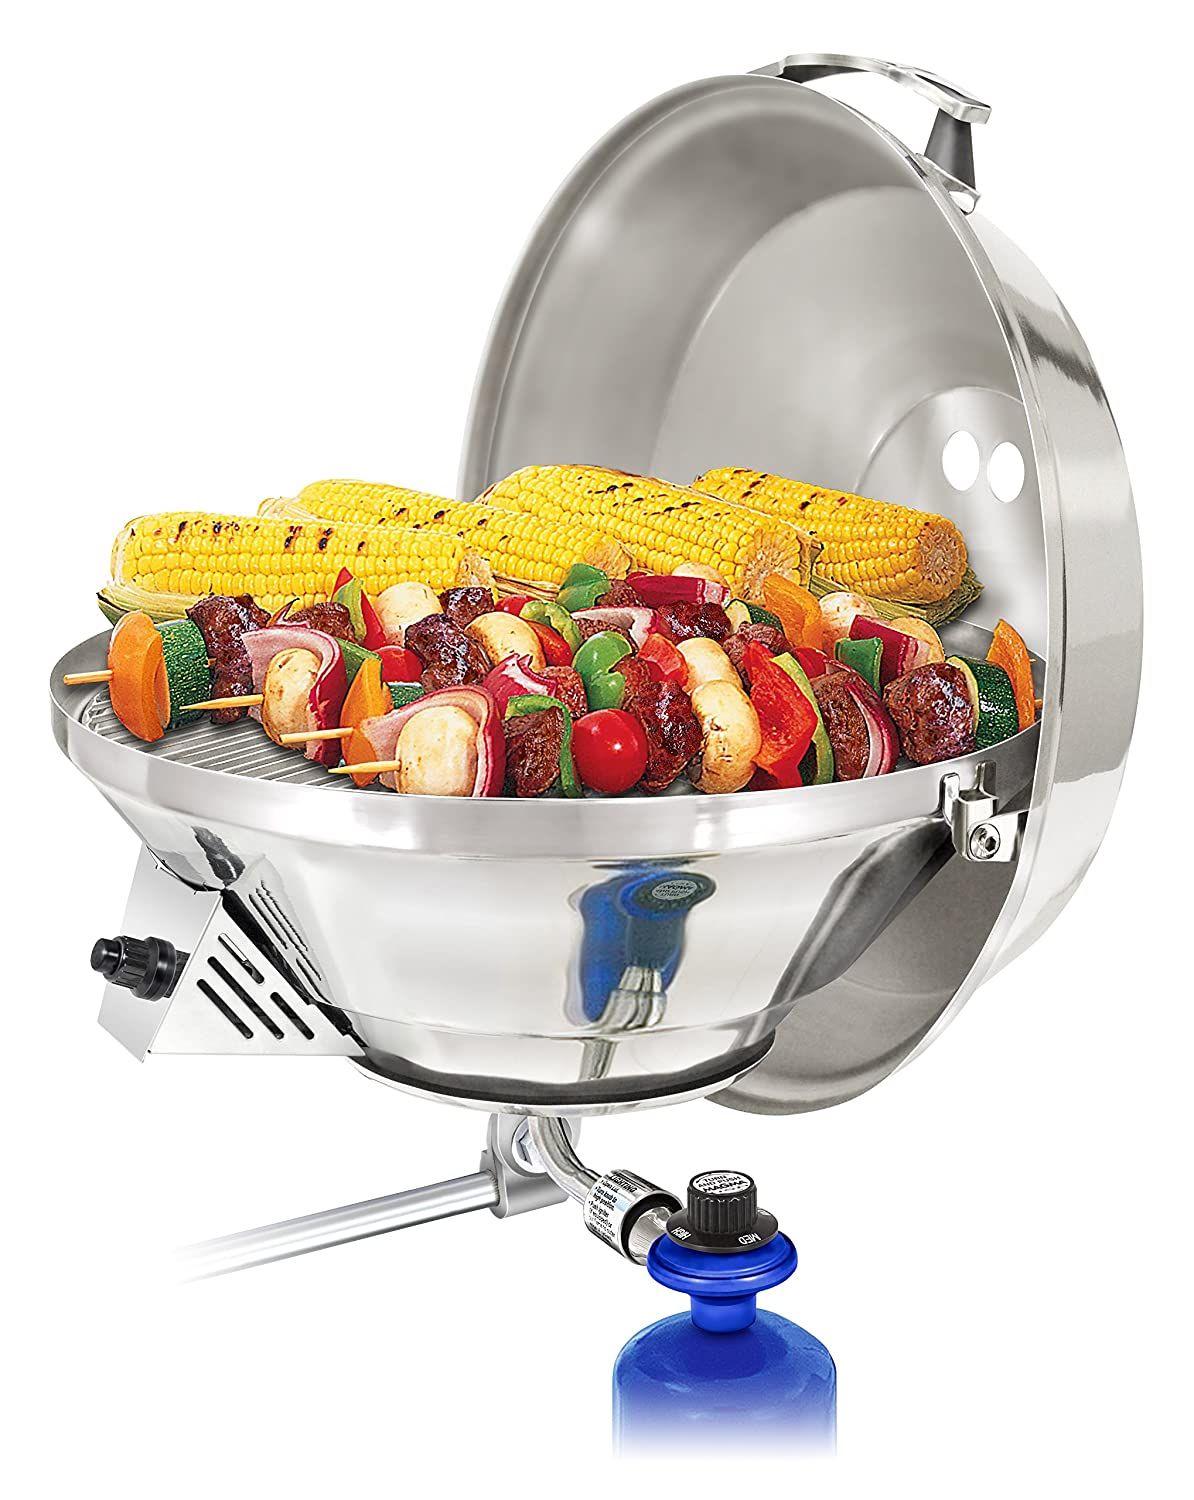 Magma Products, Marine Kettle 3, Combination Stove & Gas Grill, Propane Portable Oven